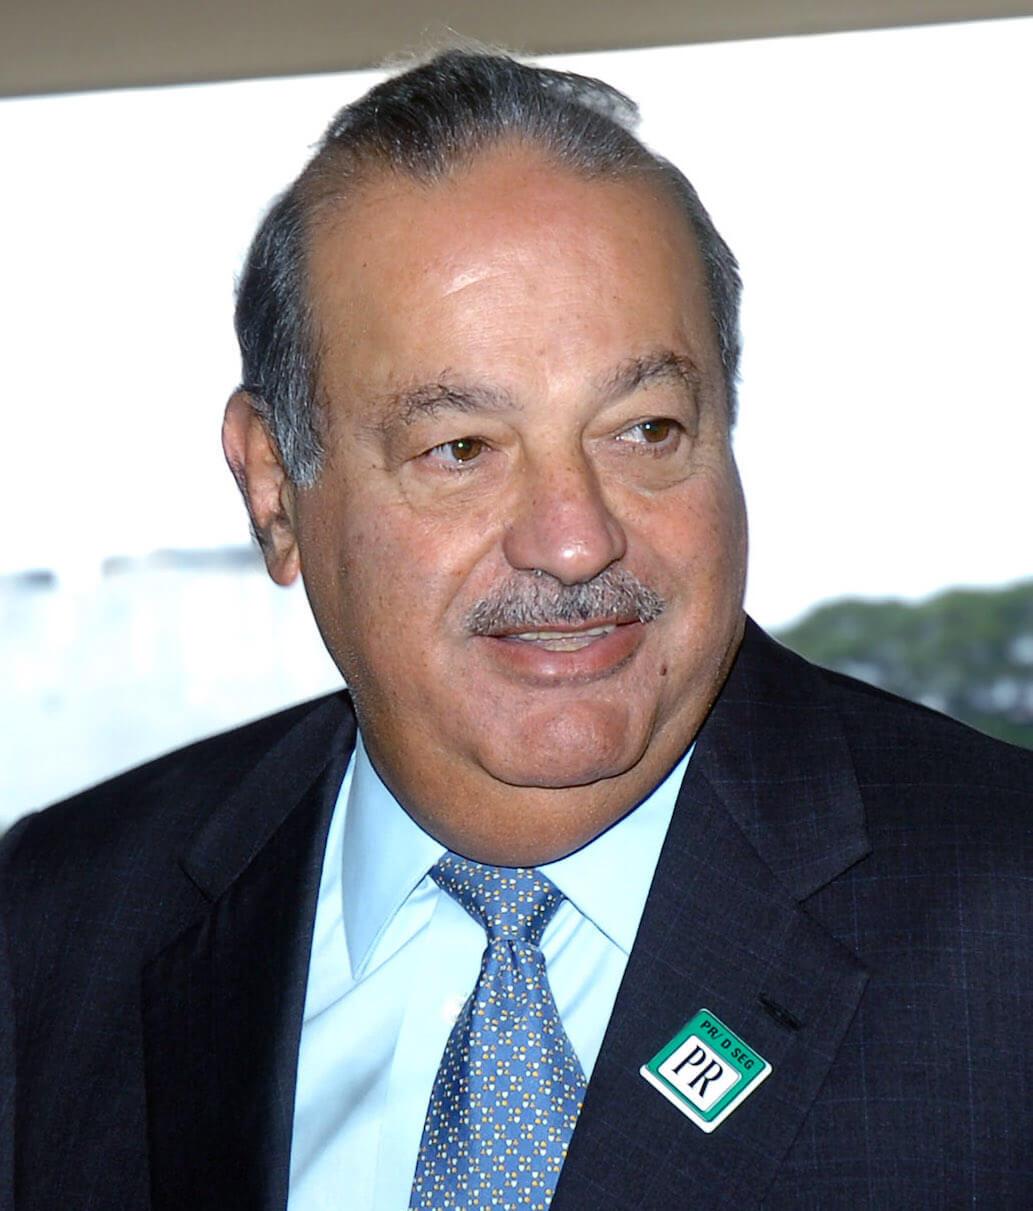 Carlos Slim Helú - Born: January 28th, 1940 in Mexico City, MexicoNet Worth: $64Bn (March 2019)CEO of Telmex, América Móvil and Grupo Carso